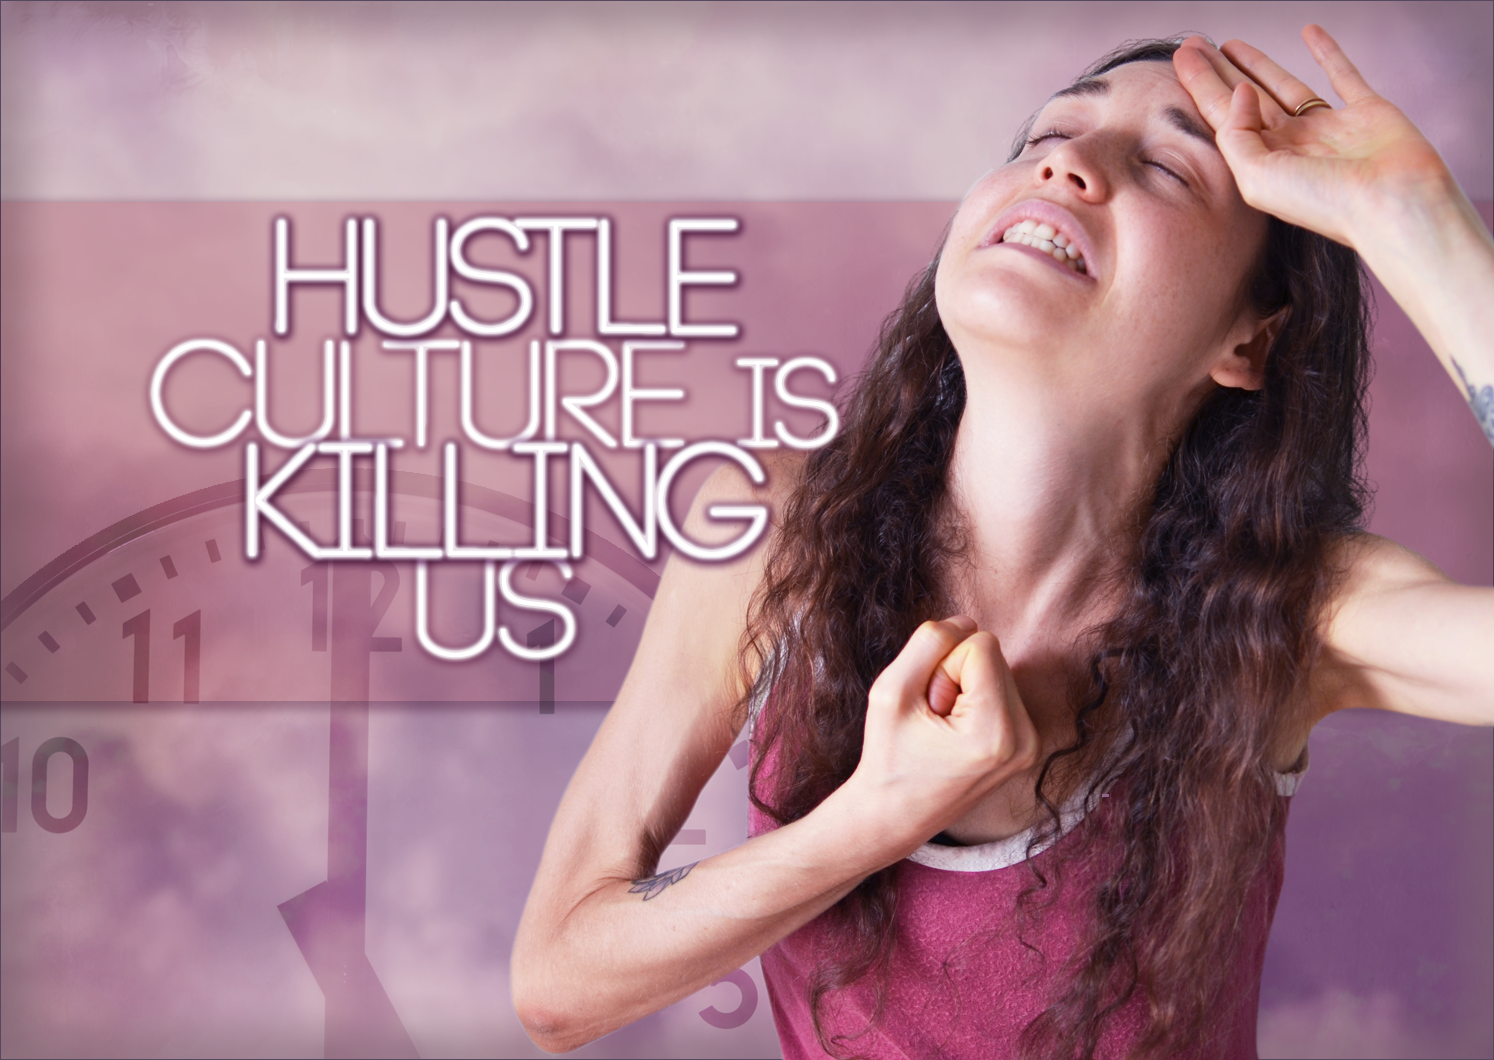 Hustle Culture Is Killing Us